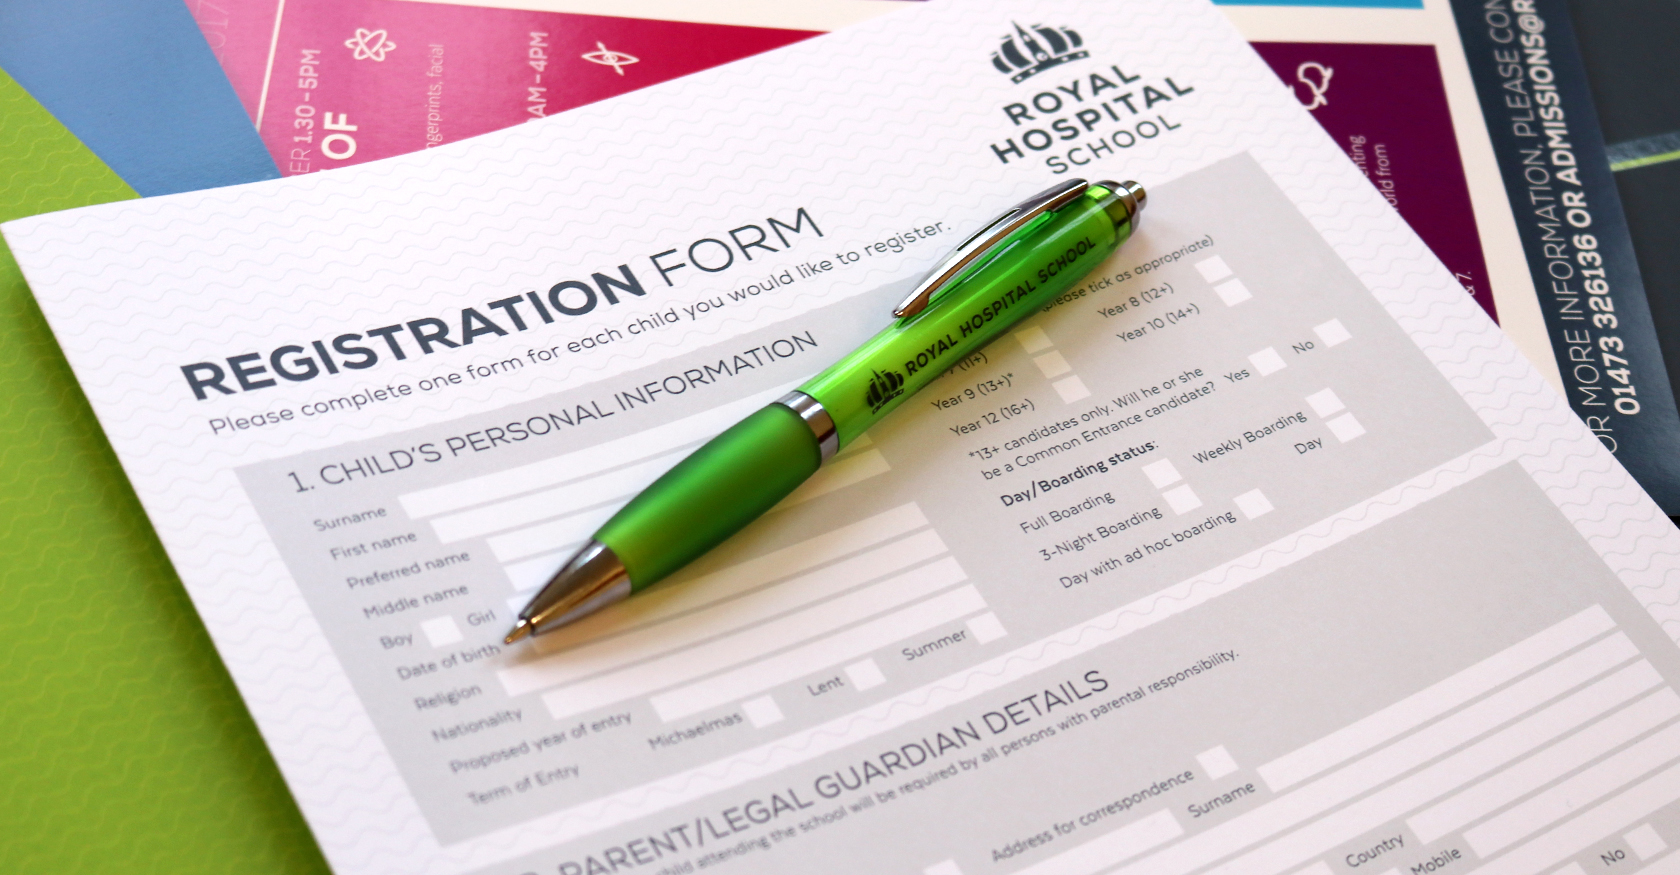 Royal Hospital School's registration form image